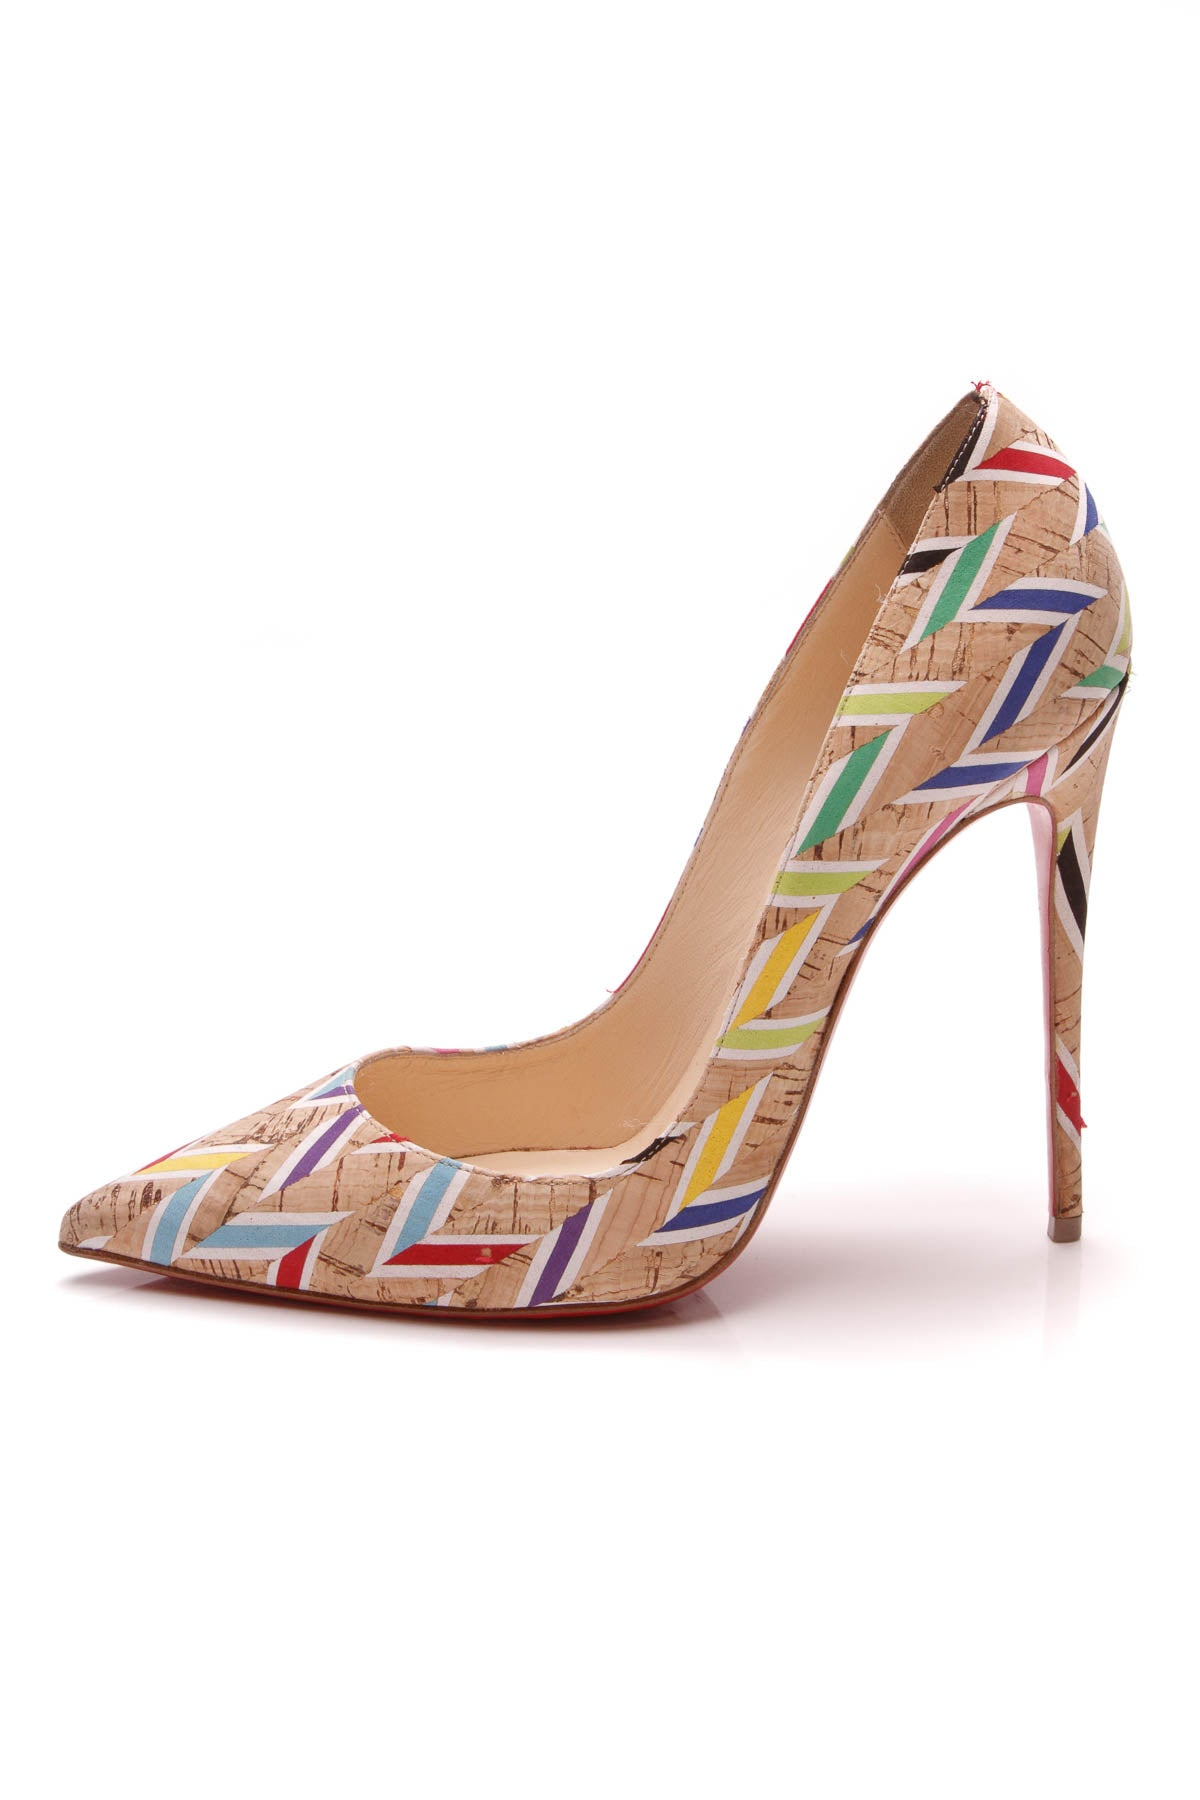 824ef8cb1aaa Christian Louboutin Printed Cork Pigalle Follies Pumps Multicolor Size 38.5